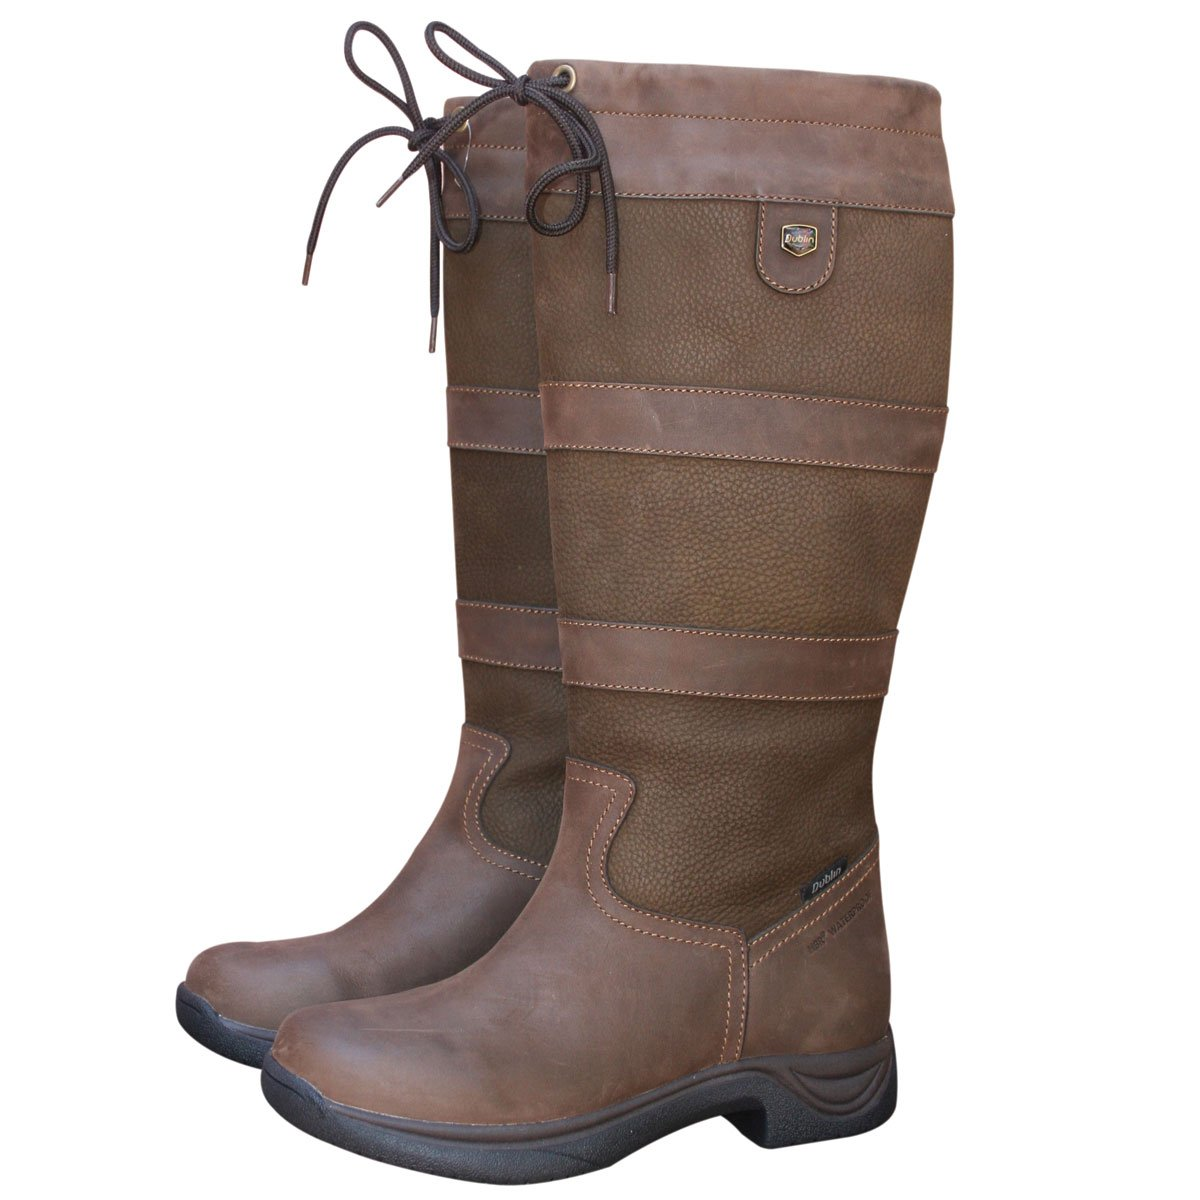 DUBLIN RIVER BOOTS I CHOCOLATE LADIES 11 WIDE